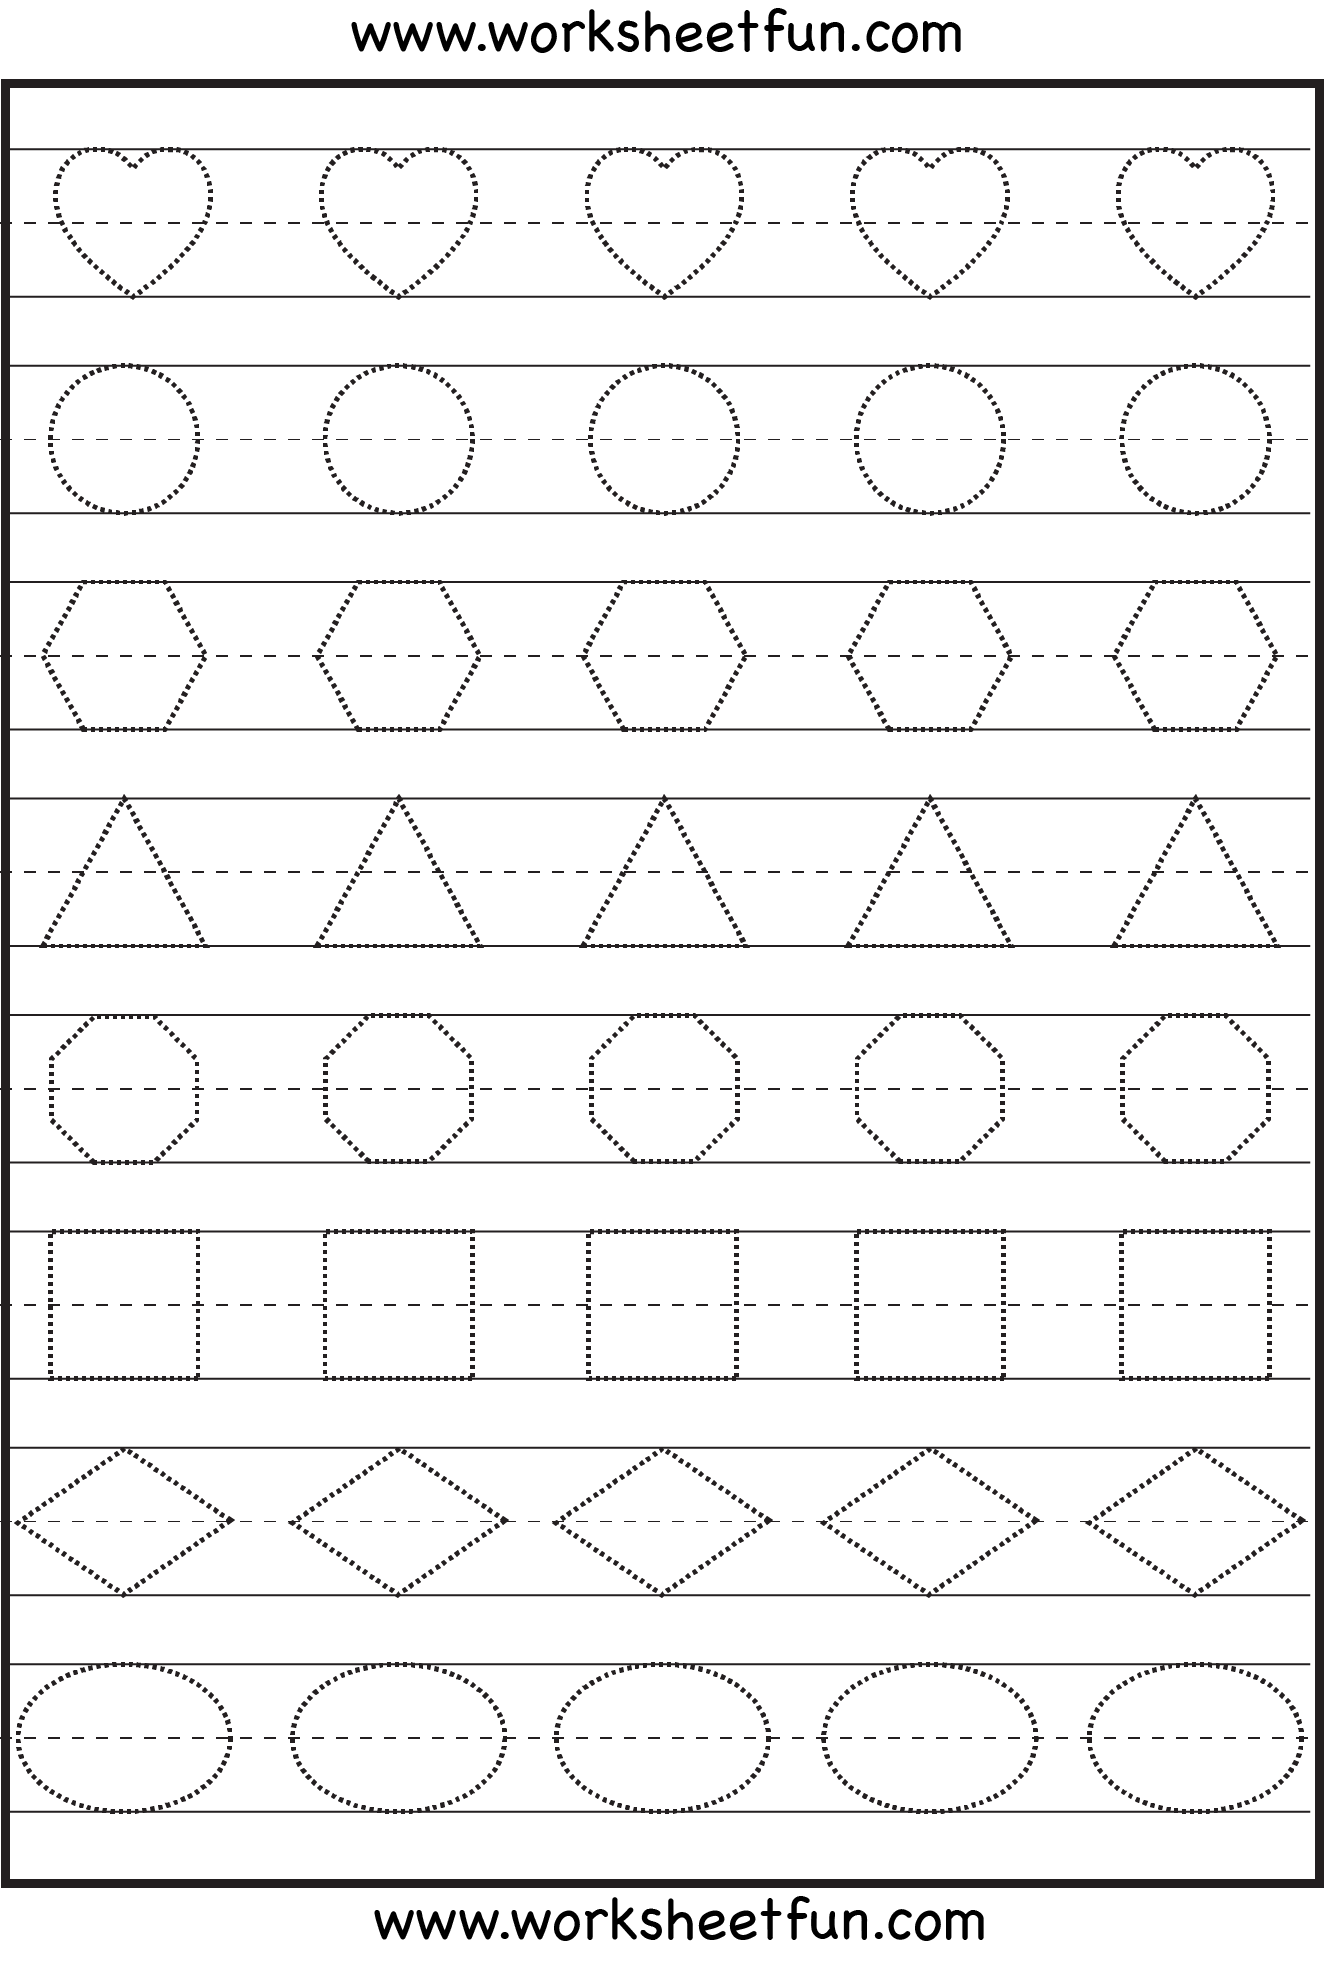 Worksheets Tracing Shapes Worksheets shape tracing letters more lots of preschool shapes worksheet they learn their while working on their